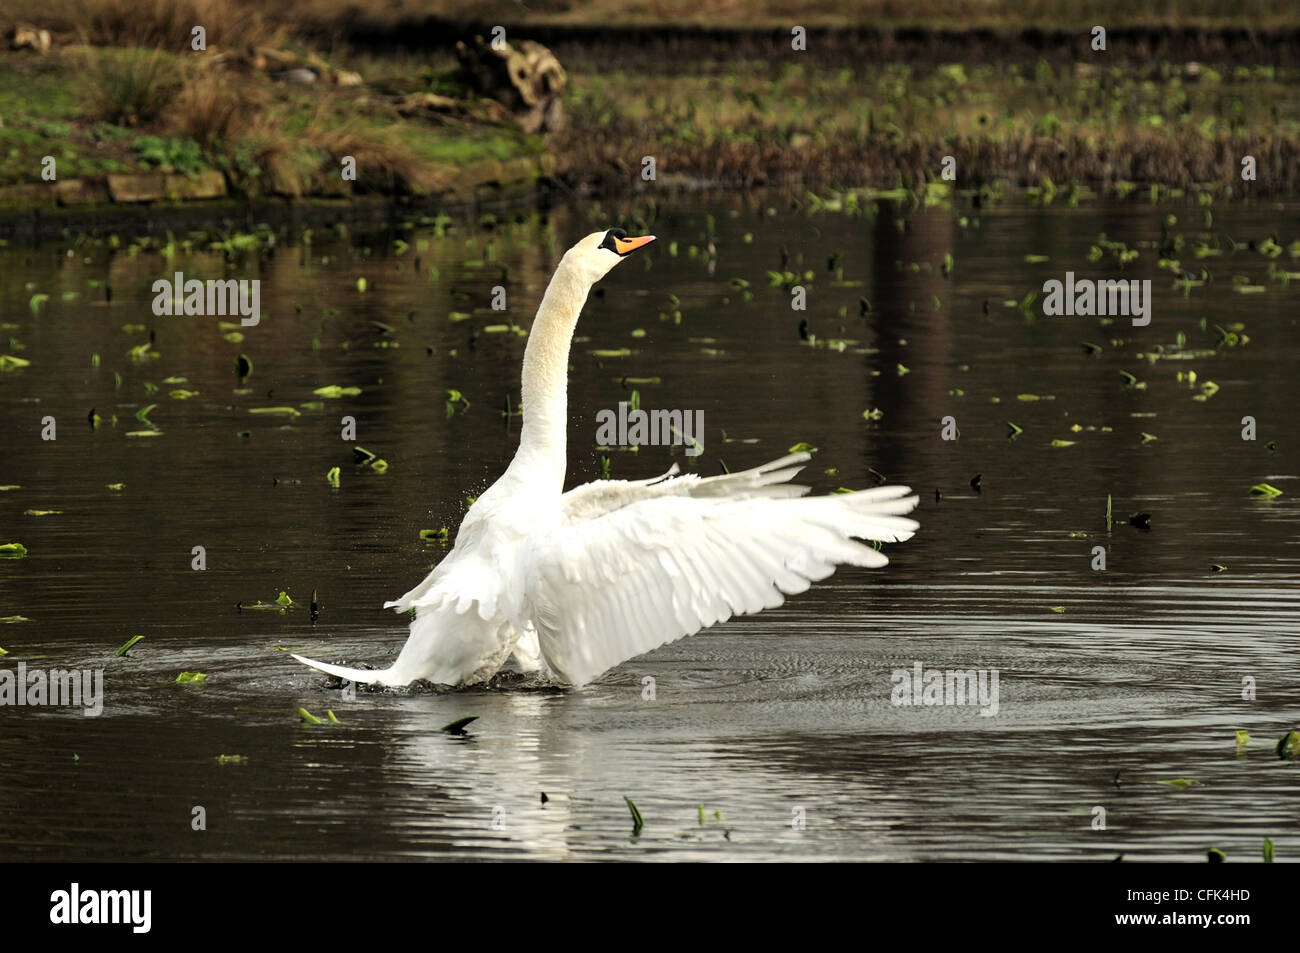 Mute swan with wings swept forward at Dunham Massey - Stock Image